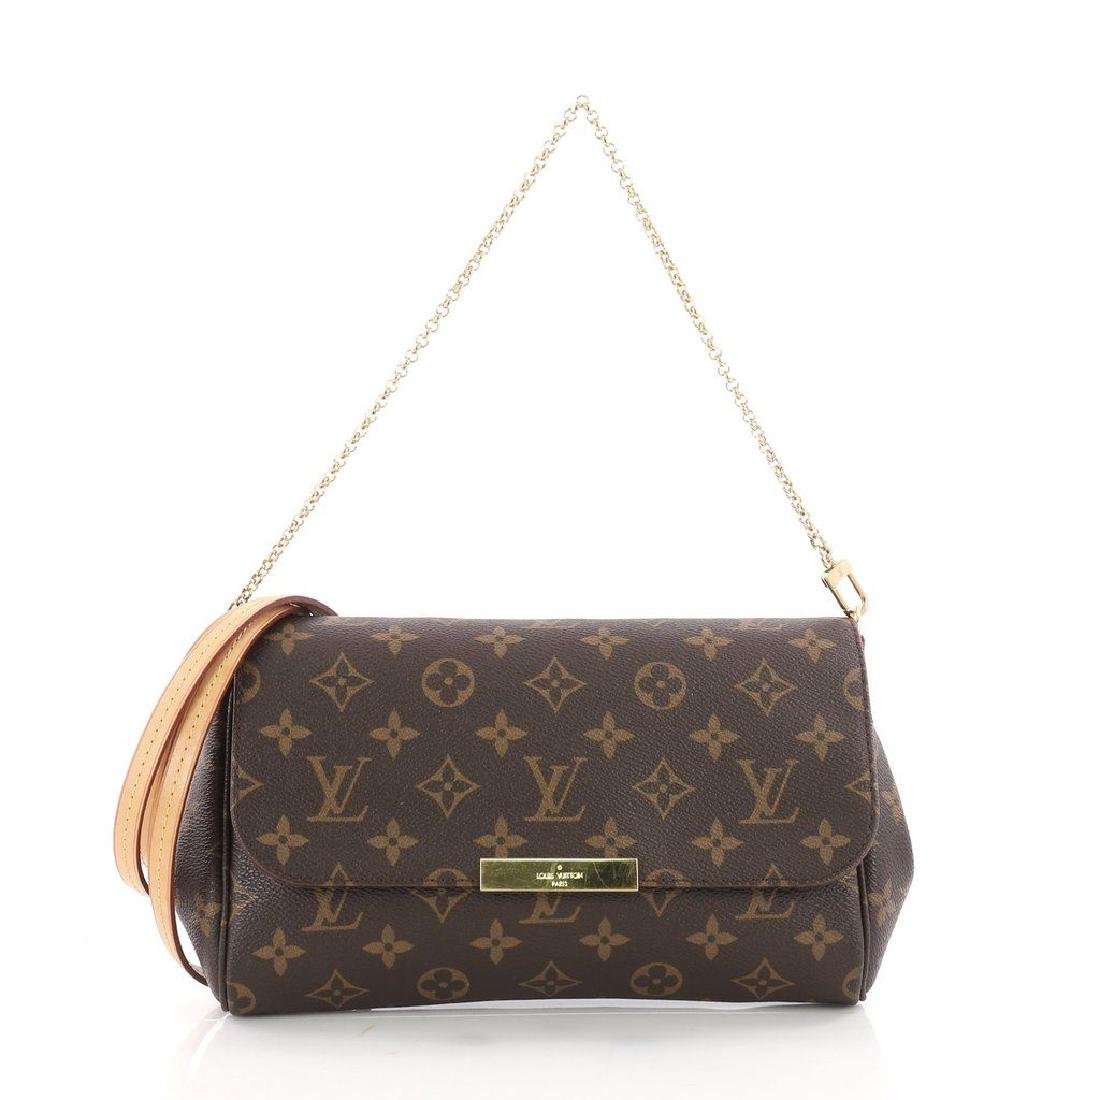 Authentic Louis Vuitton Favorite MM Crossbody Bag with